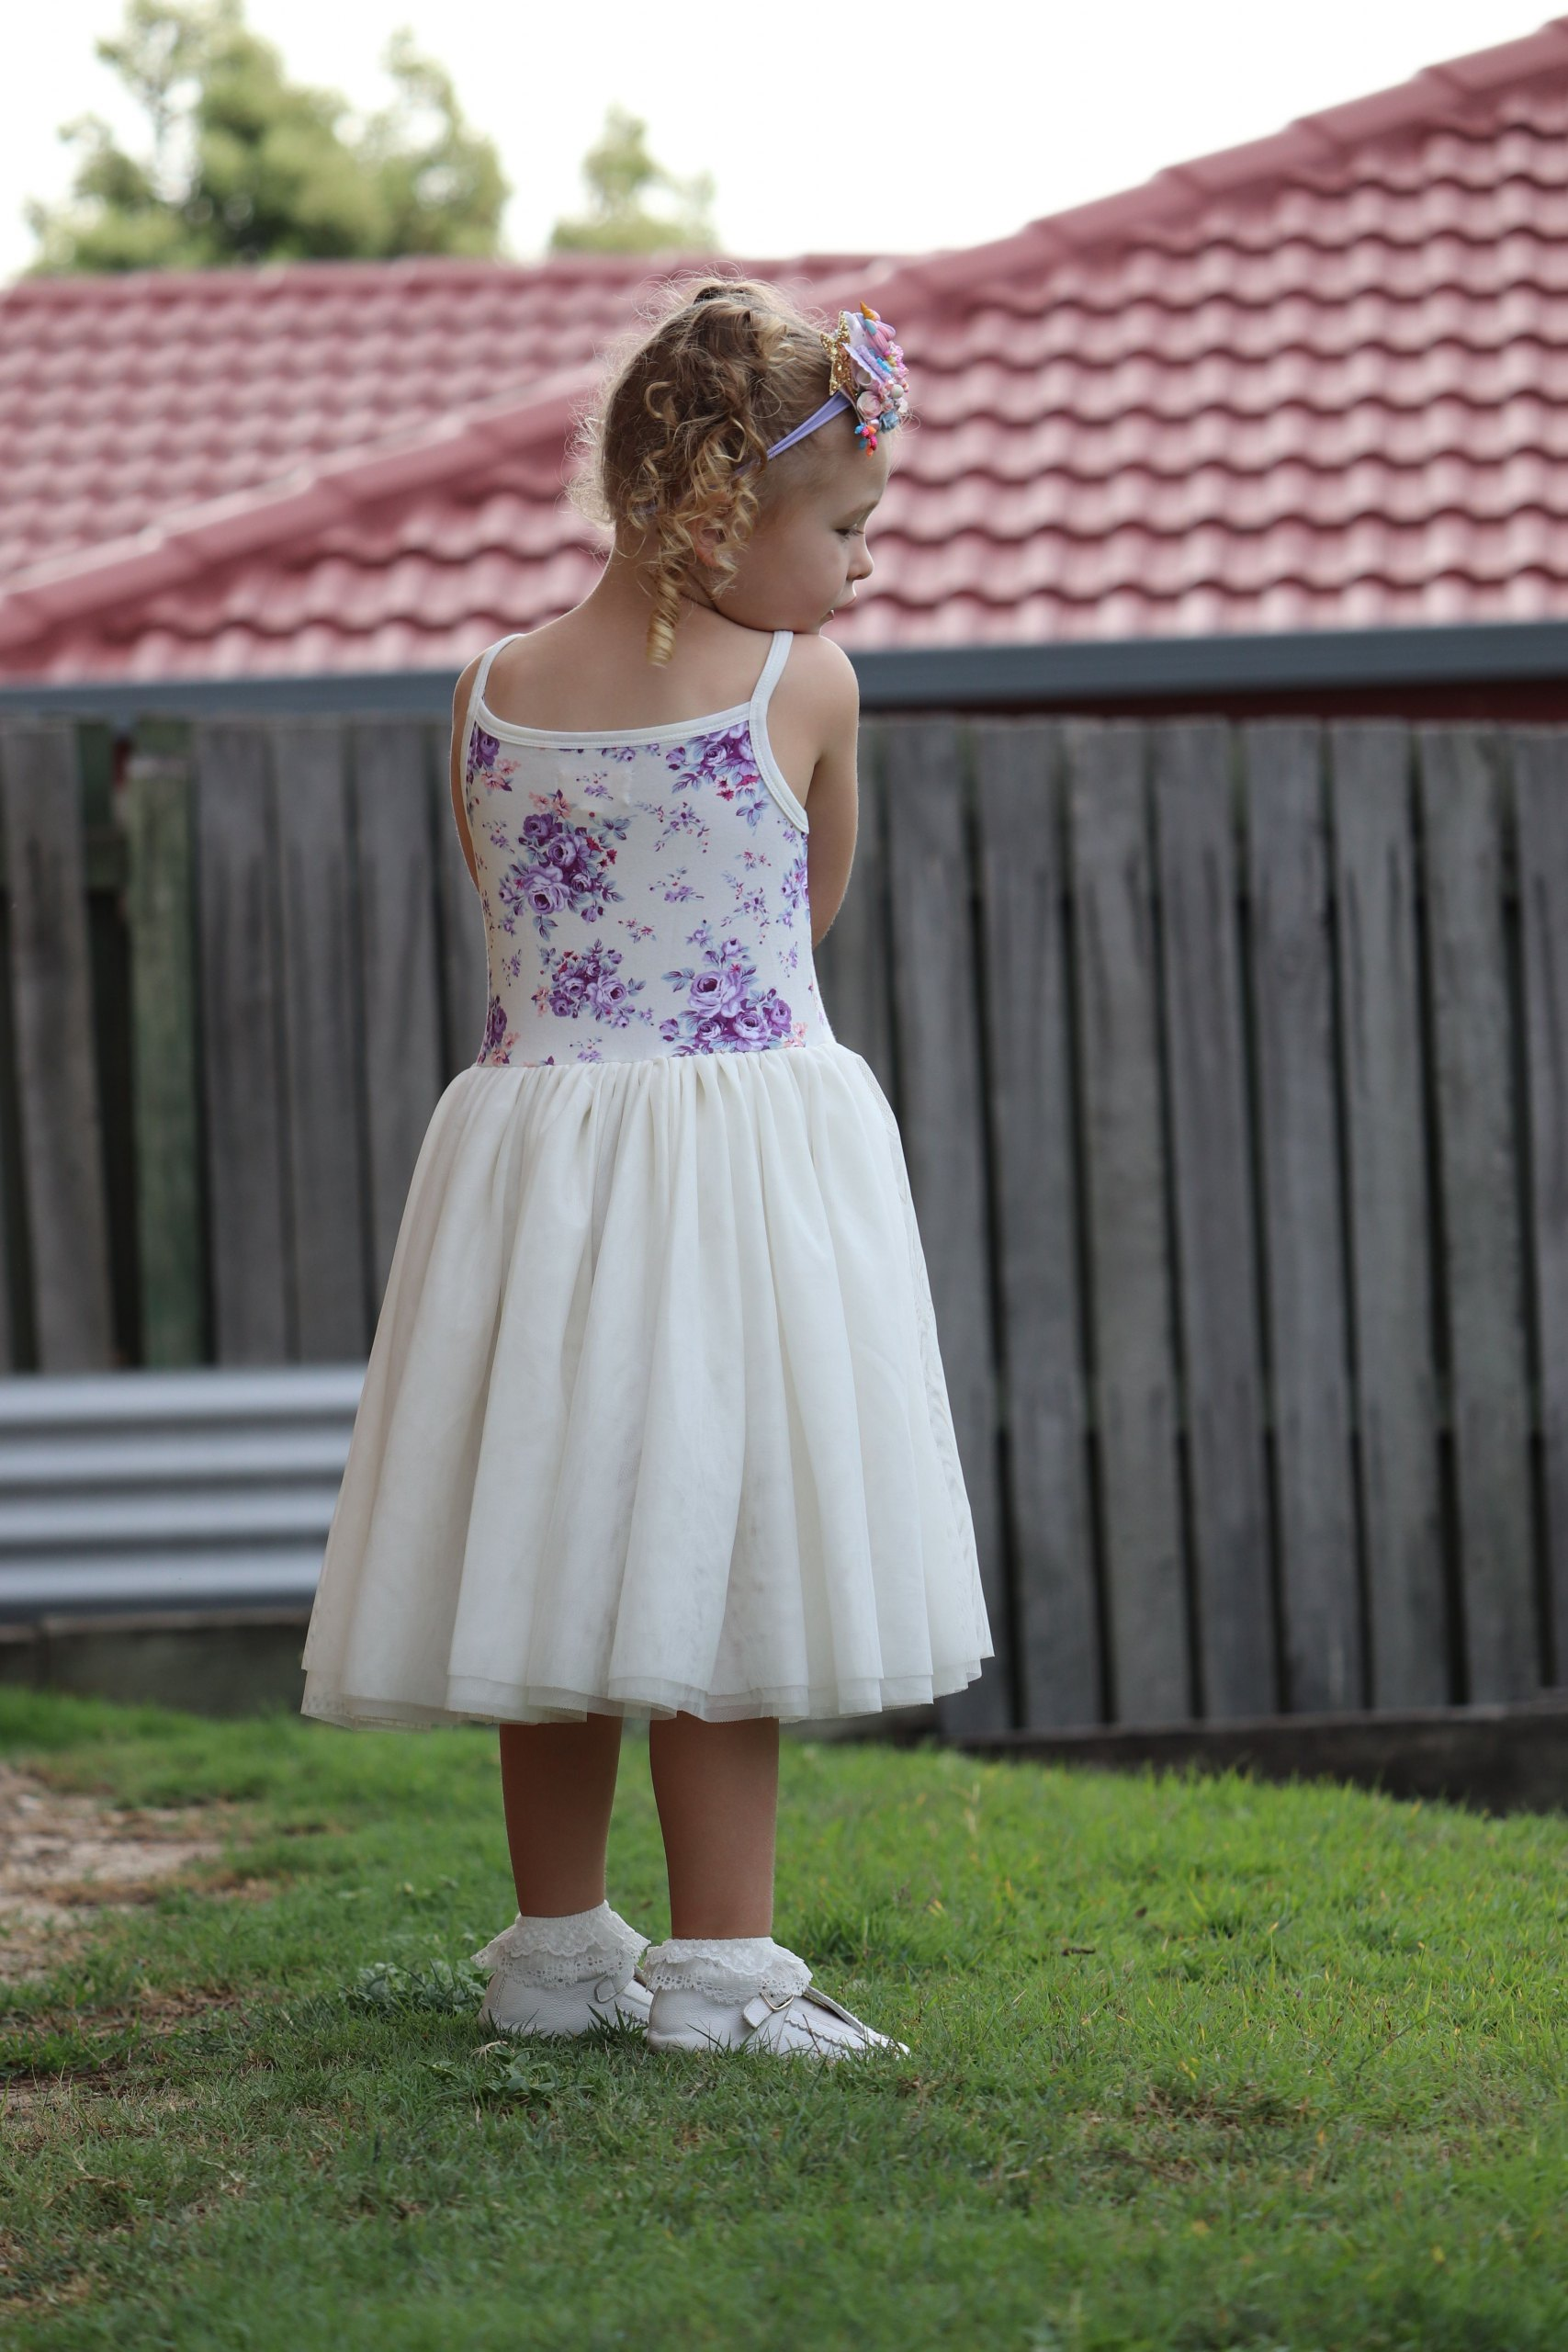 Cute girl in tutu dress